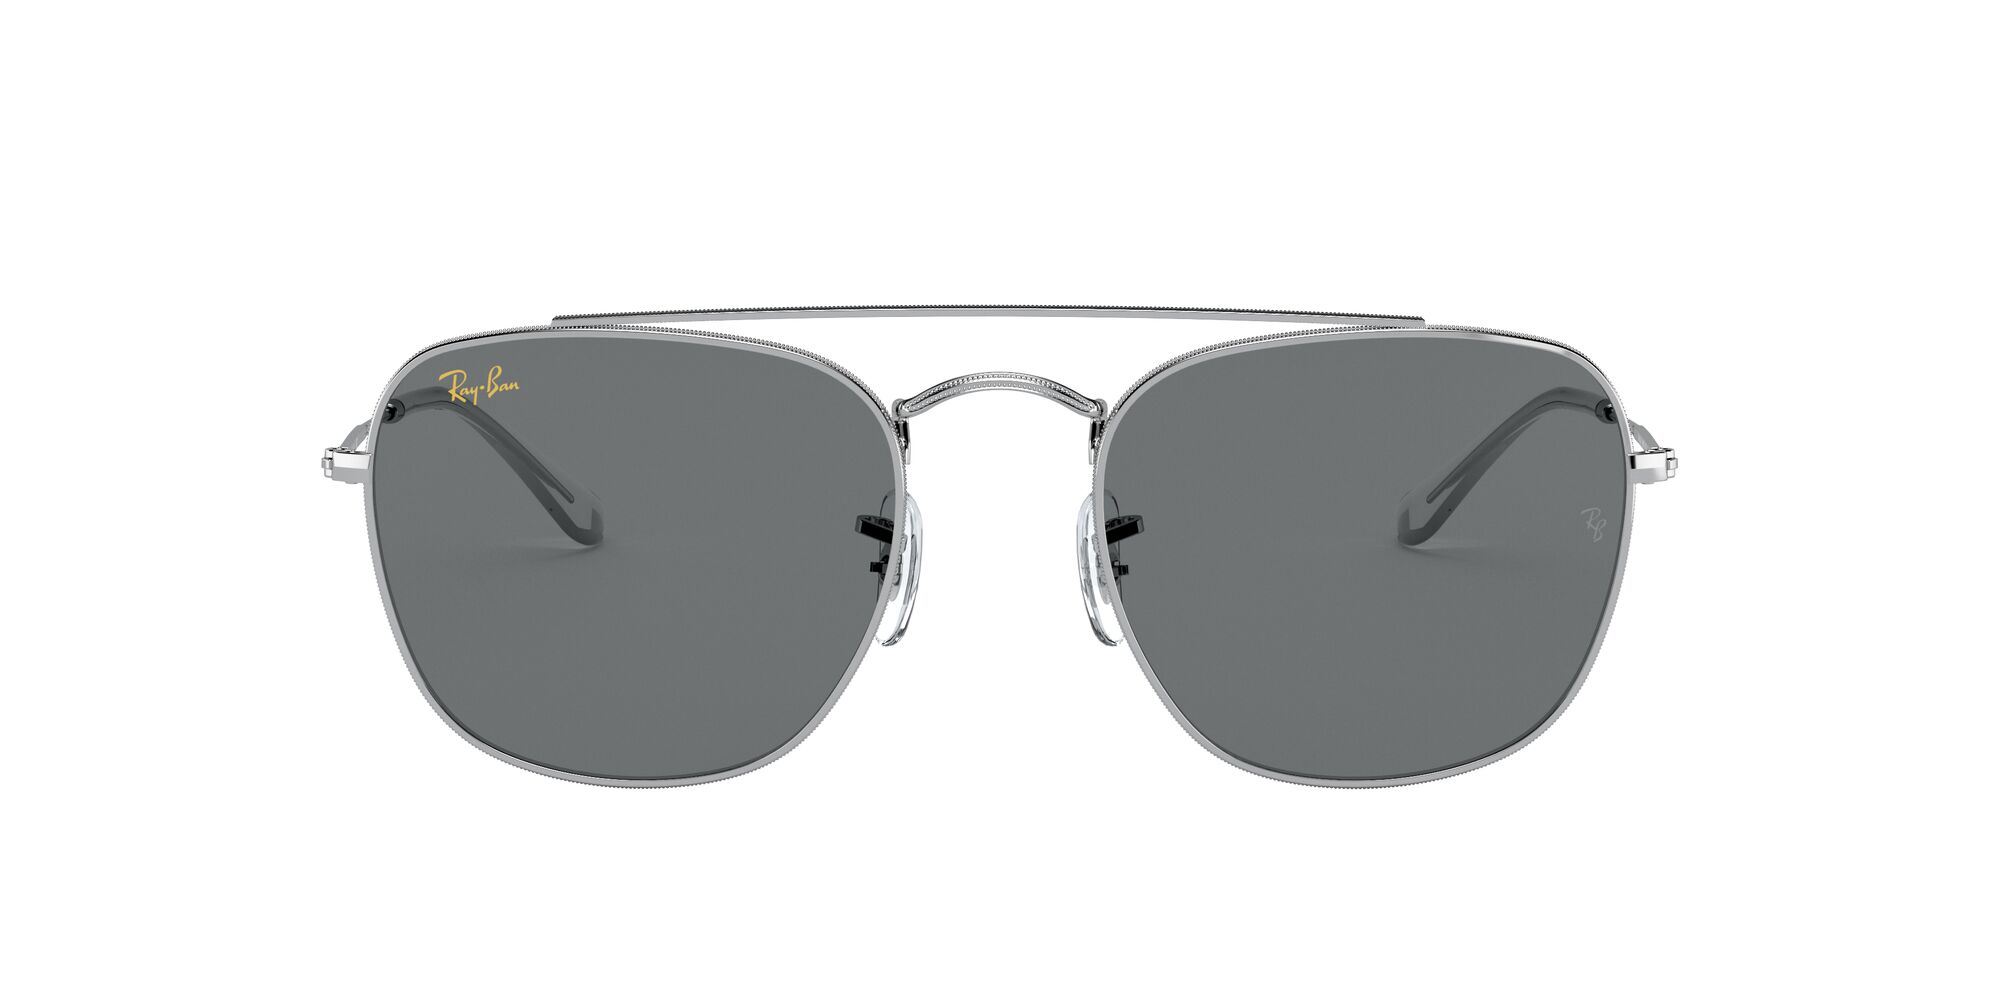 Front Ray-Ban Ray-Ban 0RB3557 9198B1 51/20 Zilver/Grijs